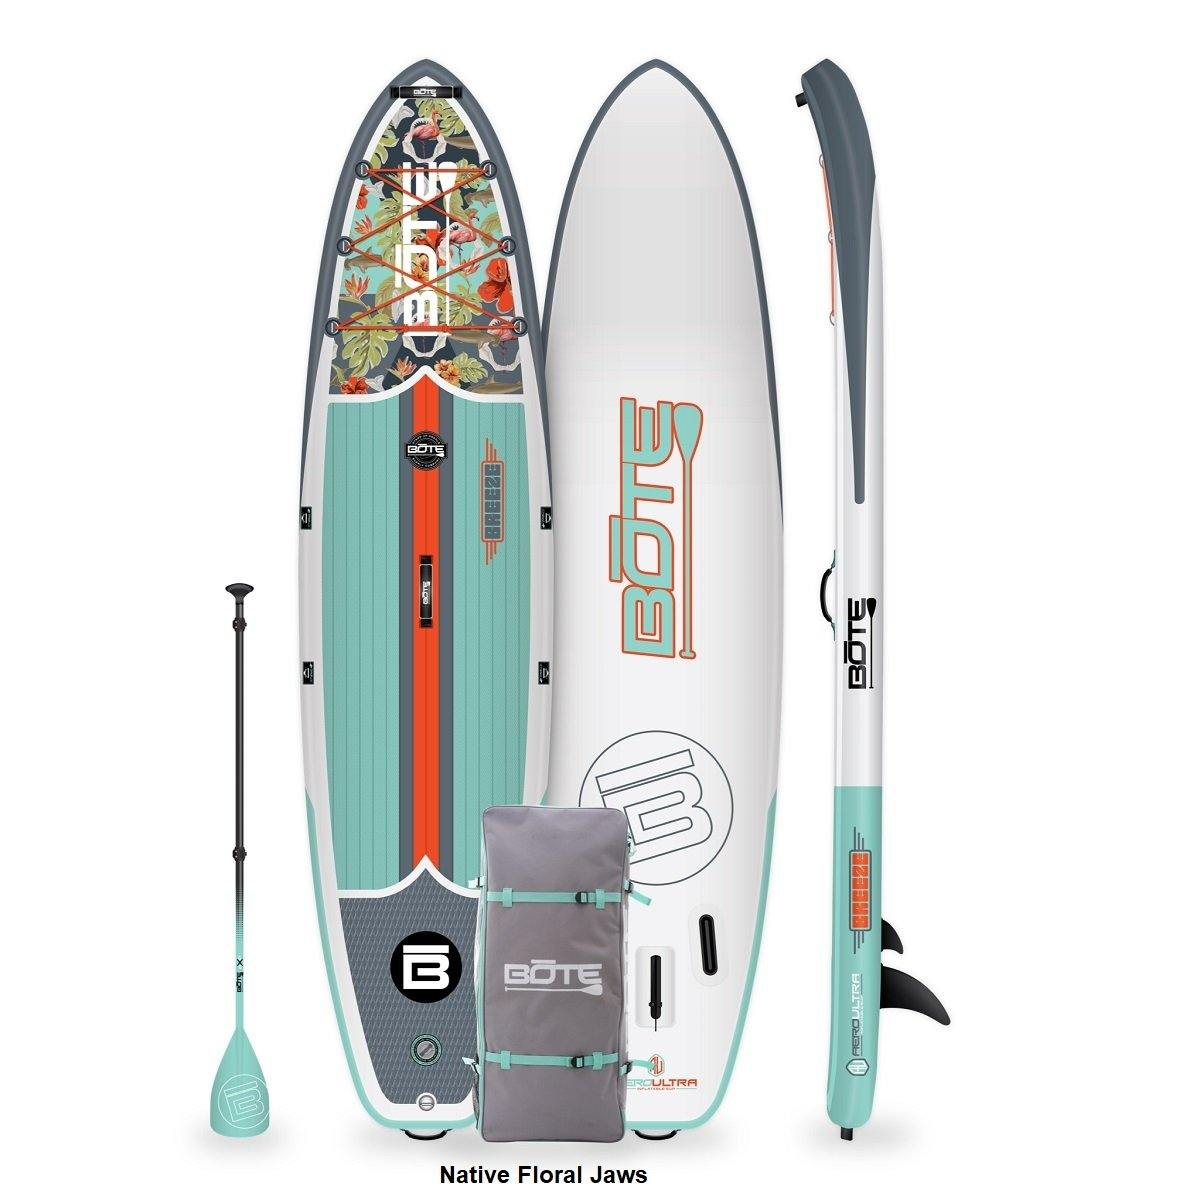 Breeze Aero Inflatable Paddle Board 10'8'' / Native Floral Jaws